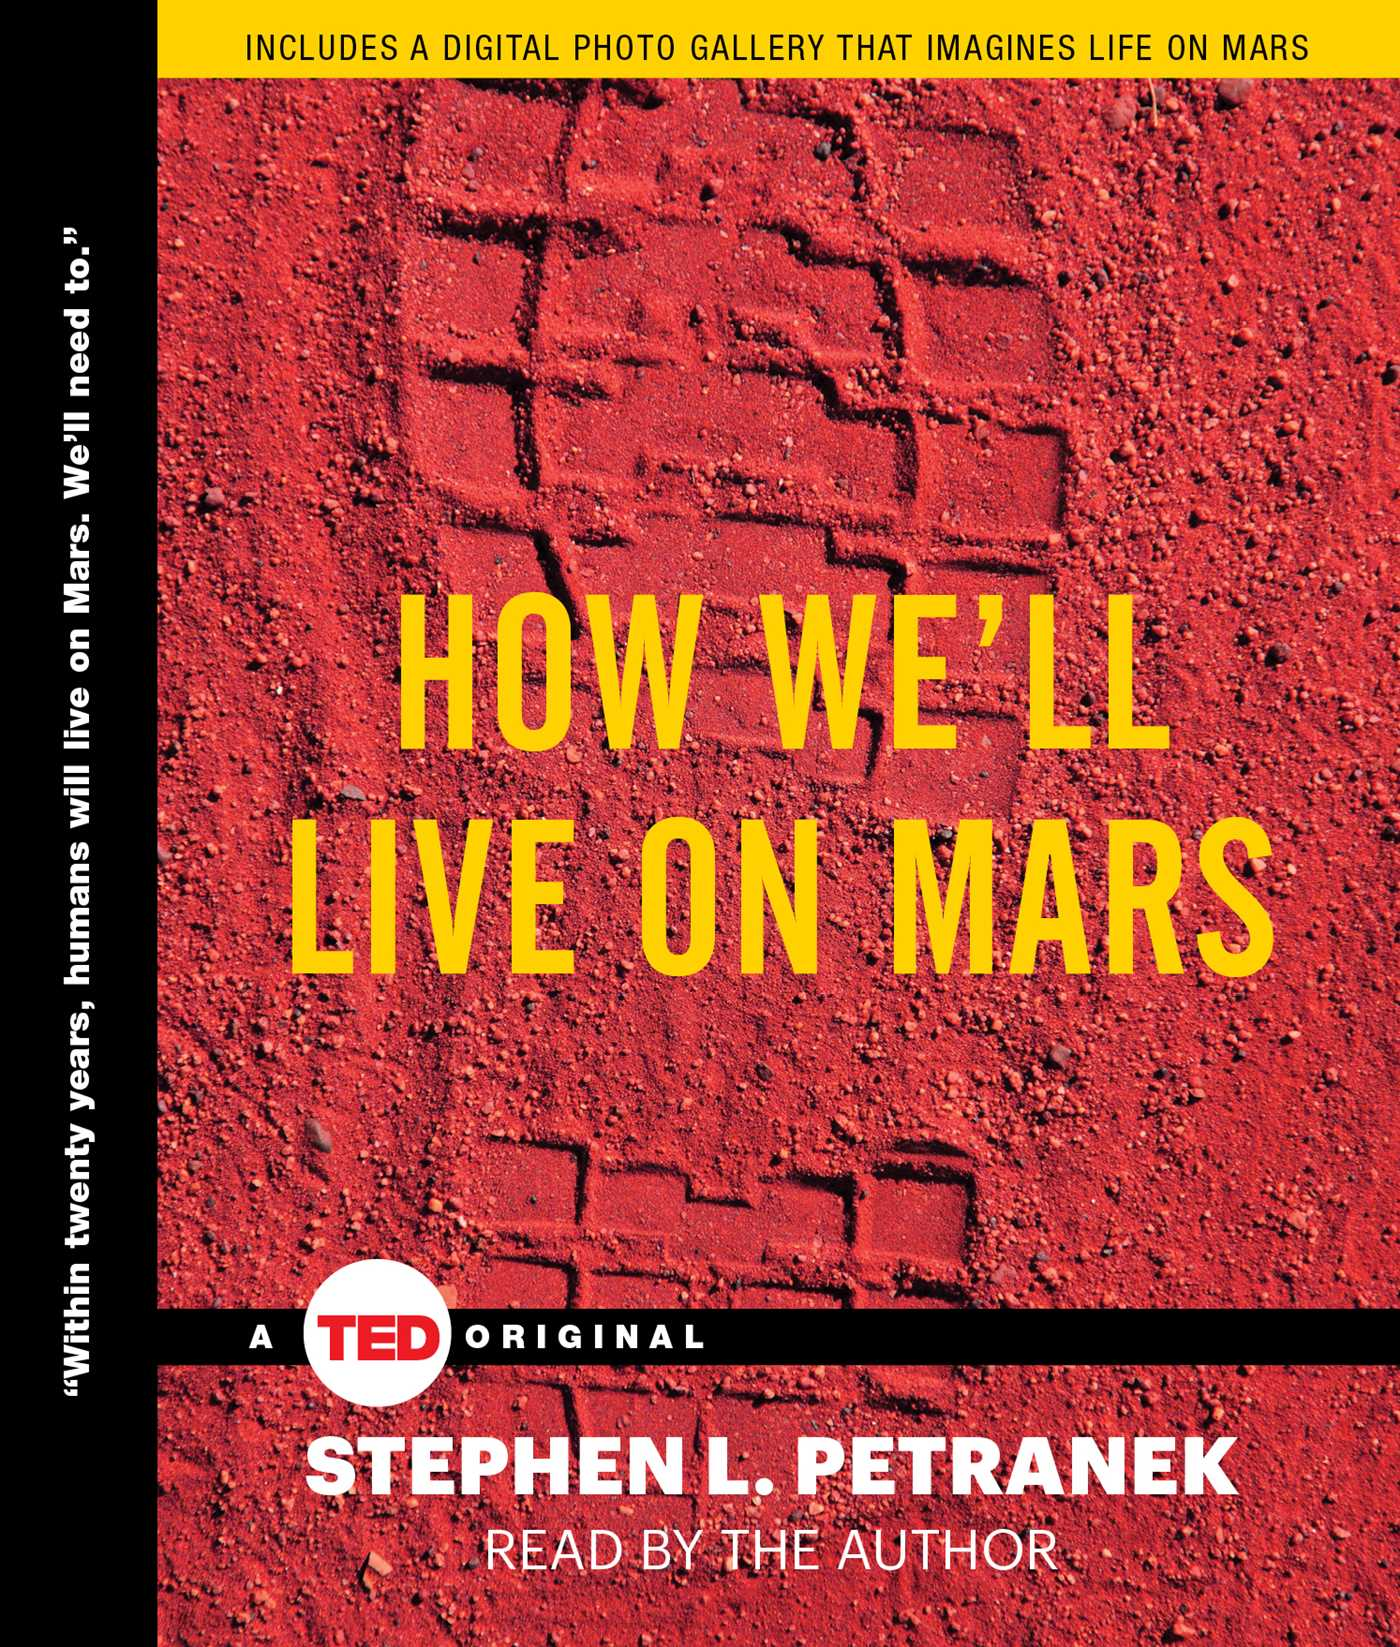 How well live on mars 9781442375864 hr